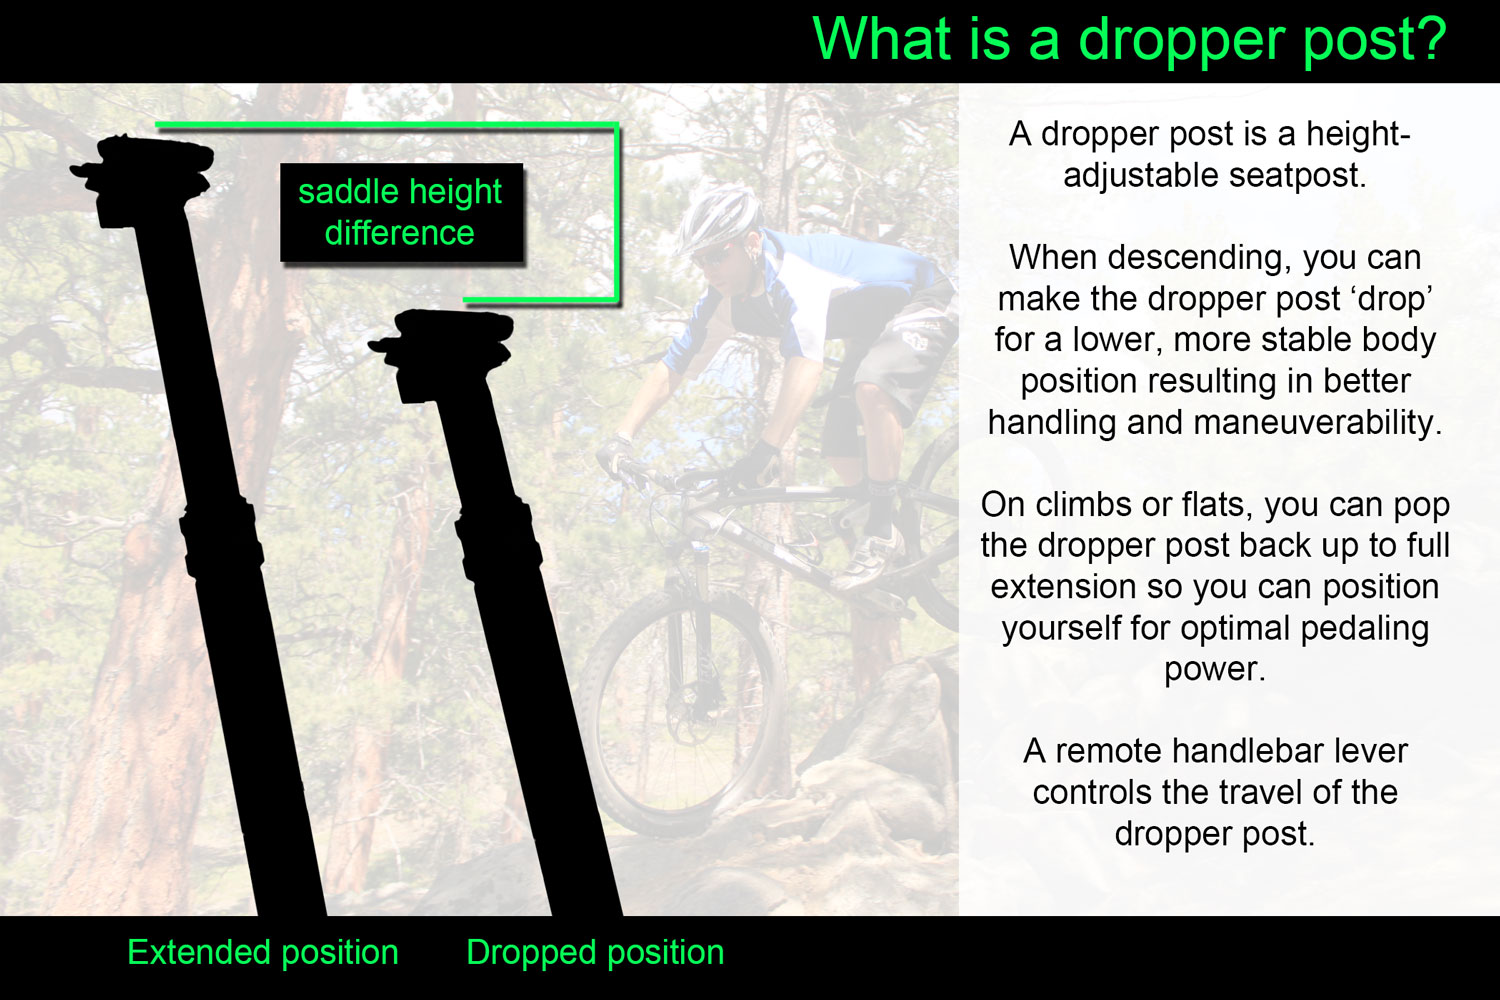 Dropper post explanation